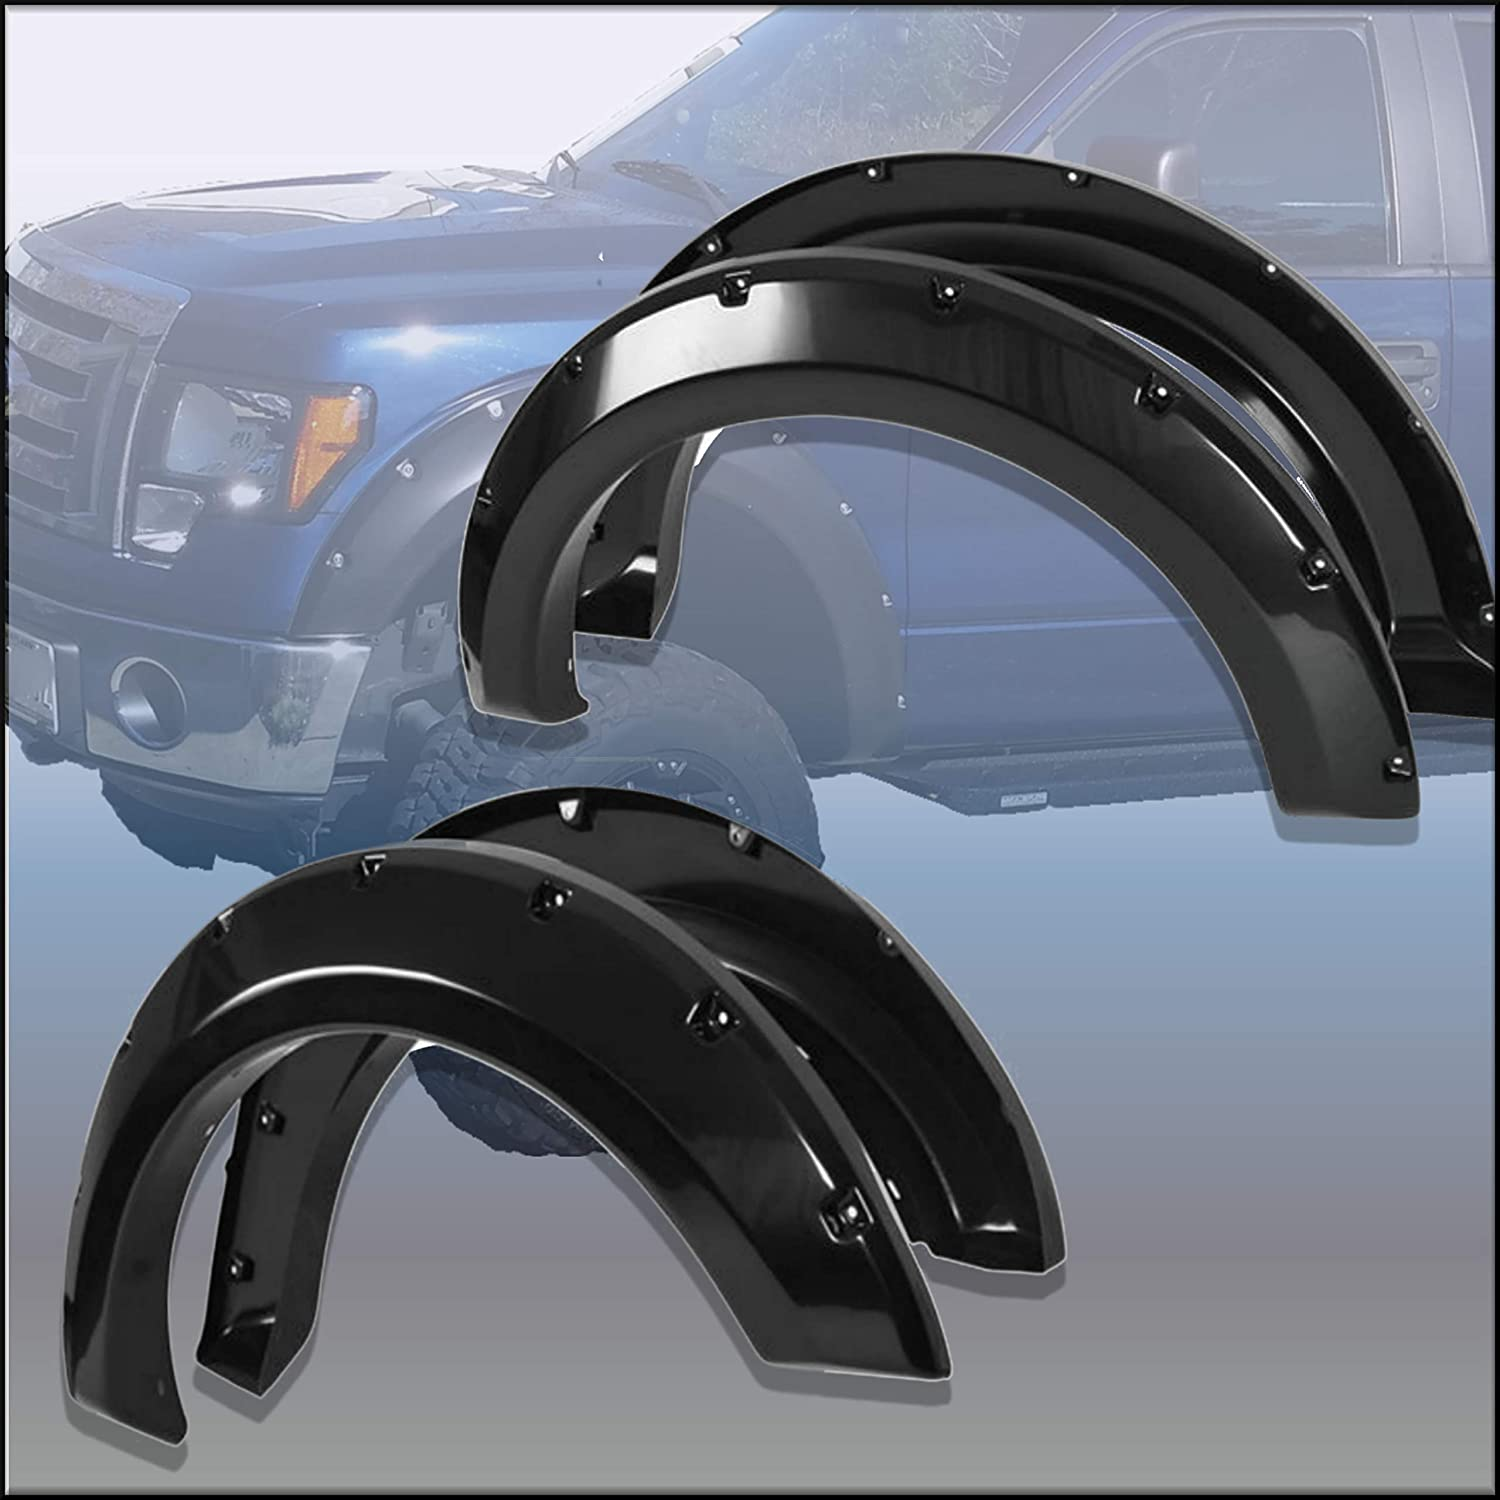 Fender Flares Rivet Pocket Style Smooth Set Bolt On Fits Ford F150 2004-2008 Pickup